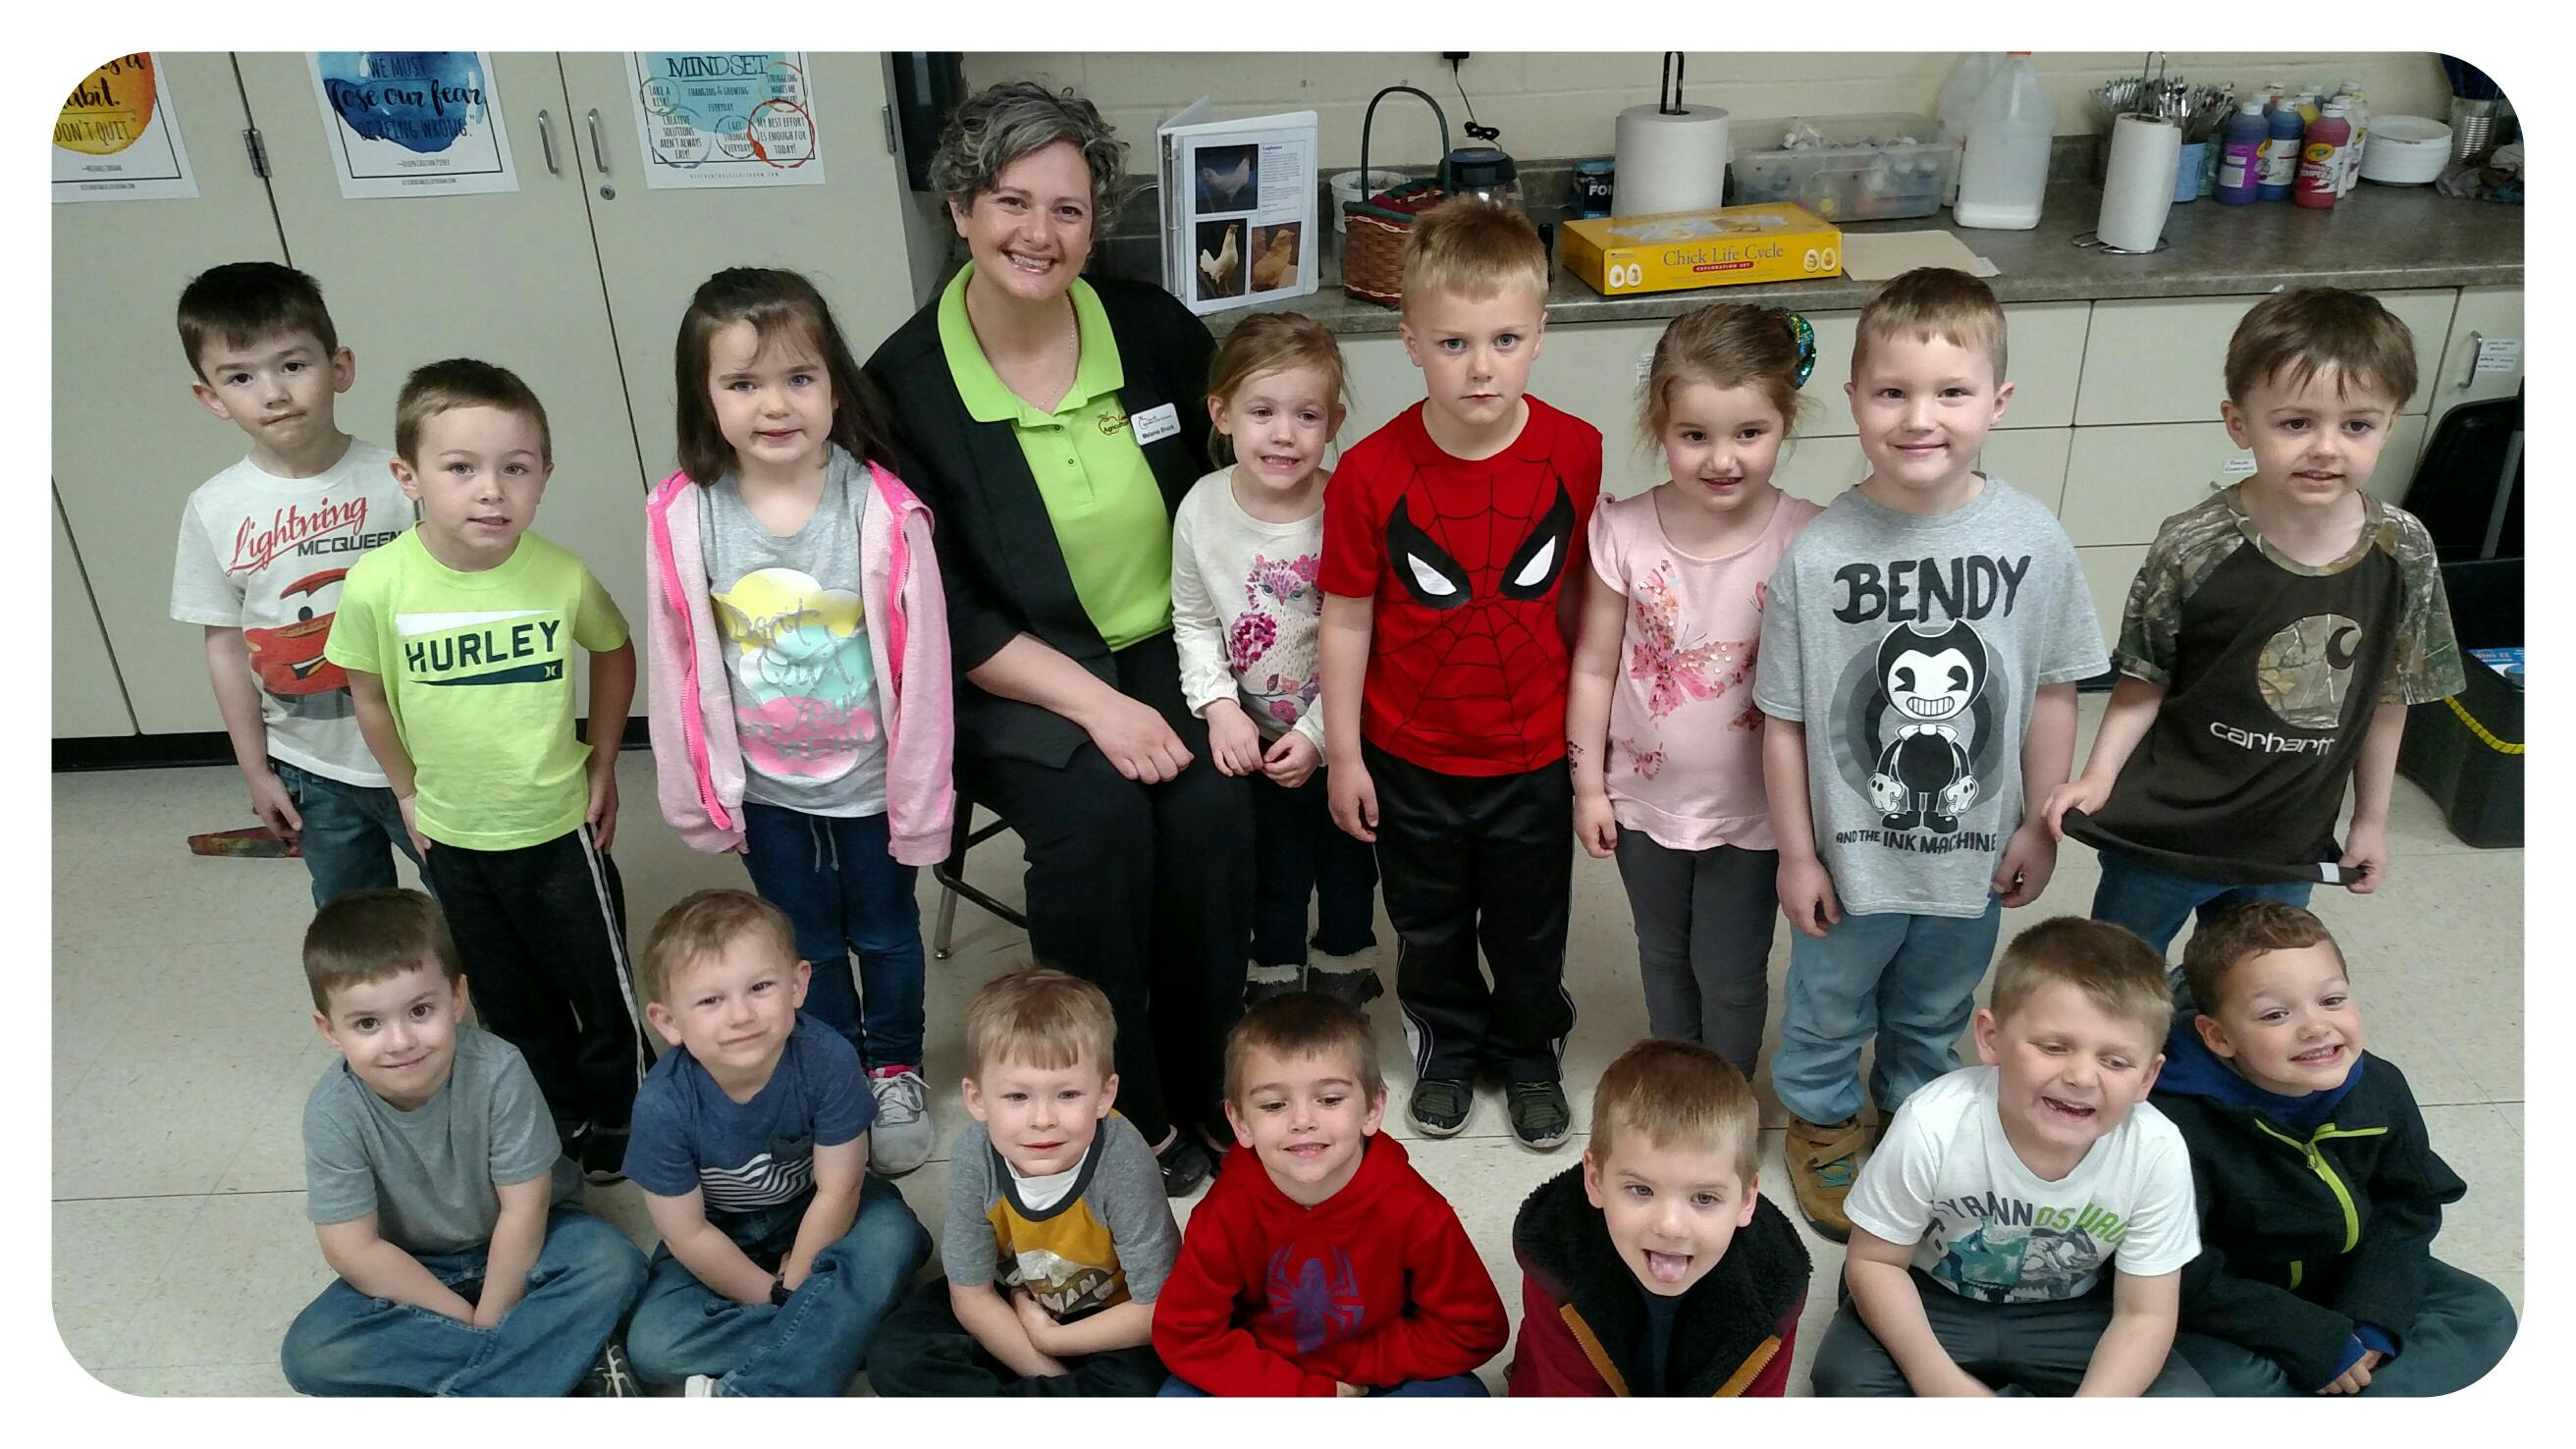 students with preschool smiling